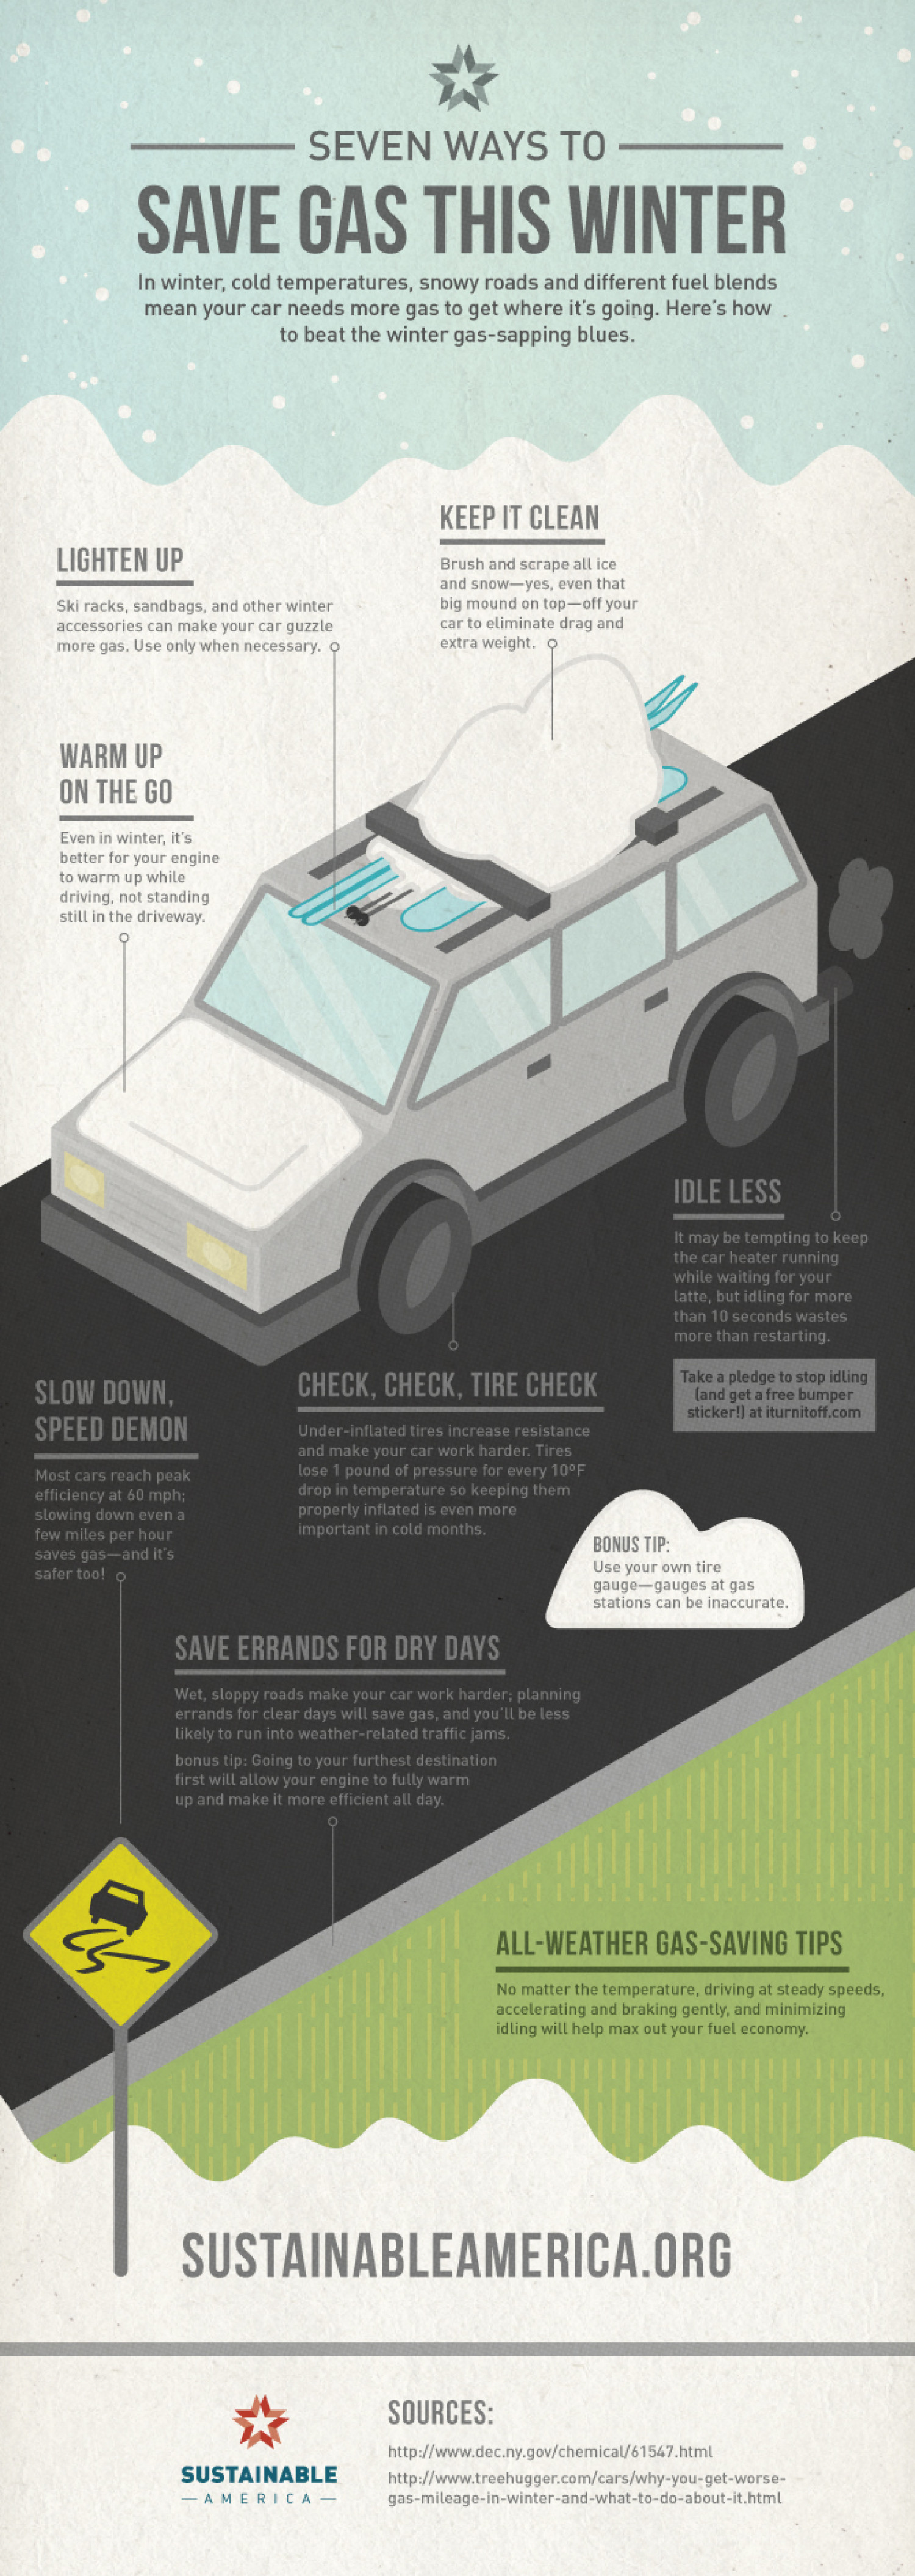 7 Ways to Save Gas This Winter Infographic